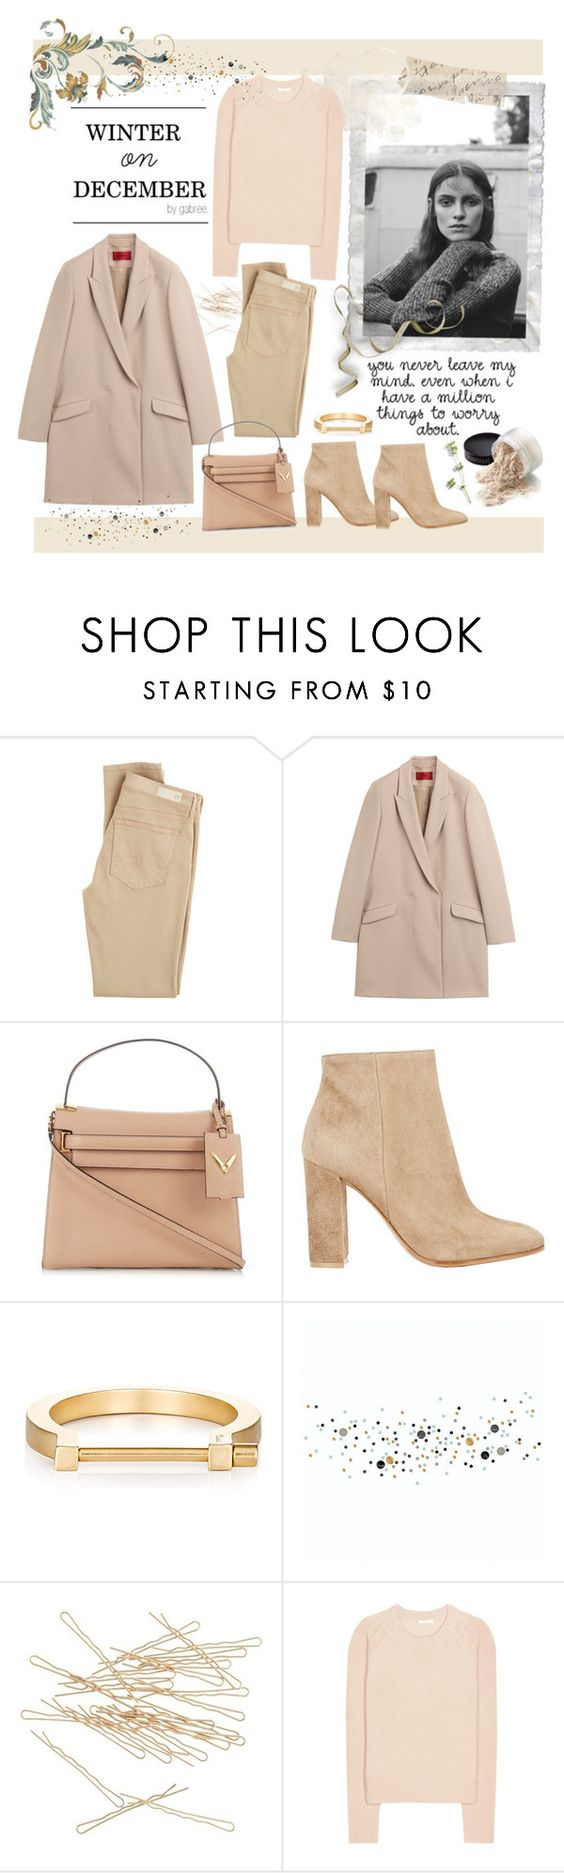 """Winter on December"" by gabree ❤ liked on Polyvore featuring Love Quotes Scarves, AG Adriano Goldschmied, HUGO, Valentino, Gianvito Rossi, MIANSAI, J.Crew and Chloé"